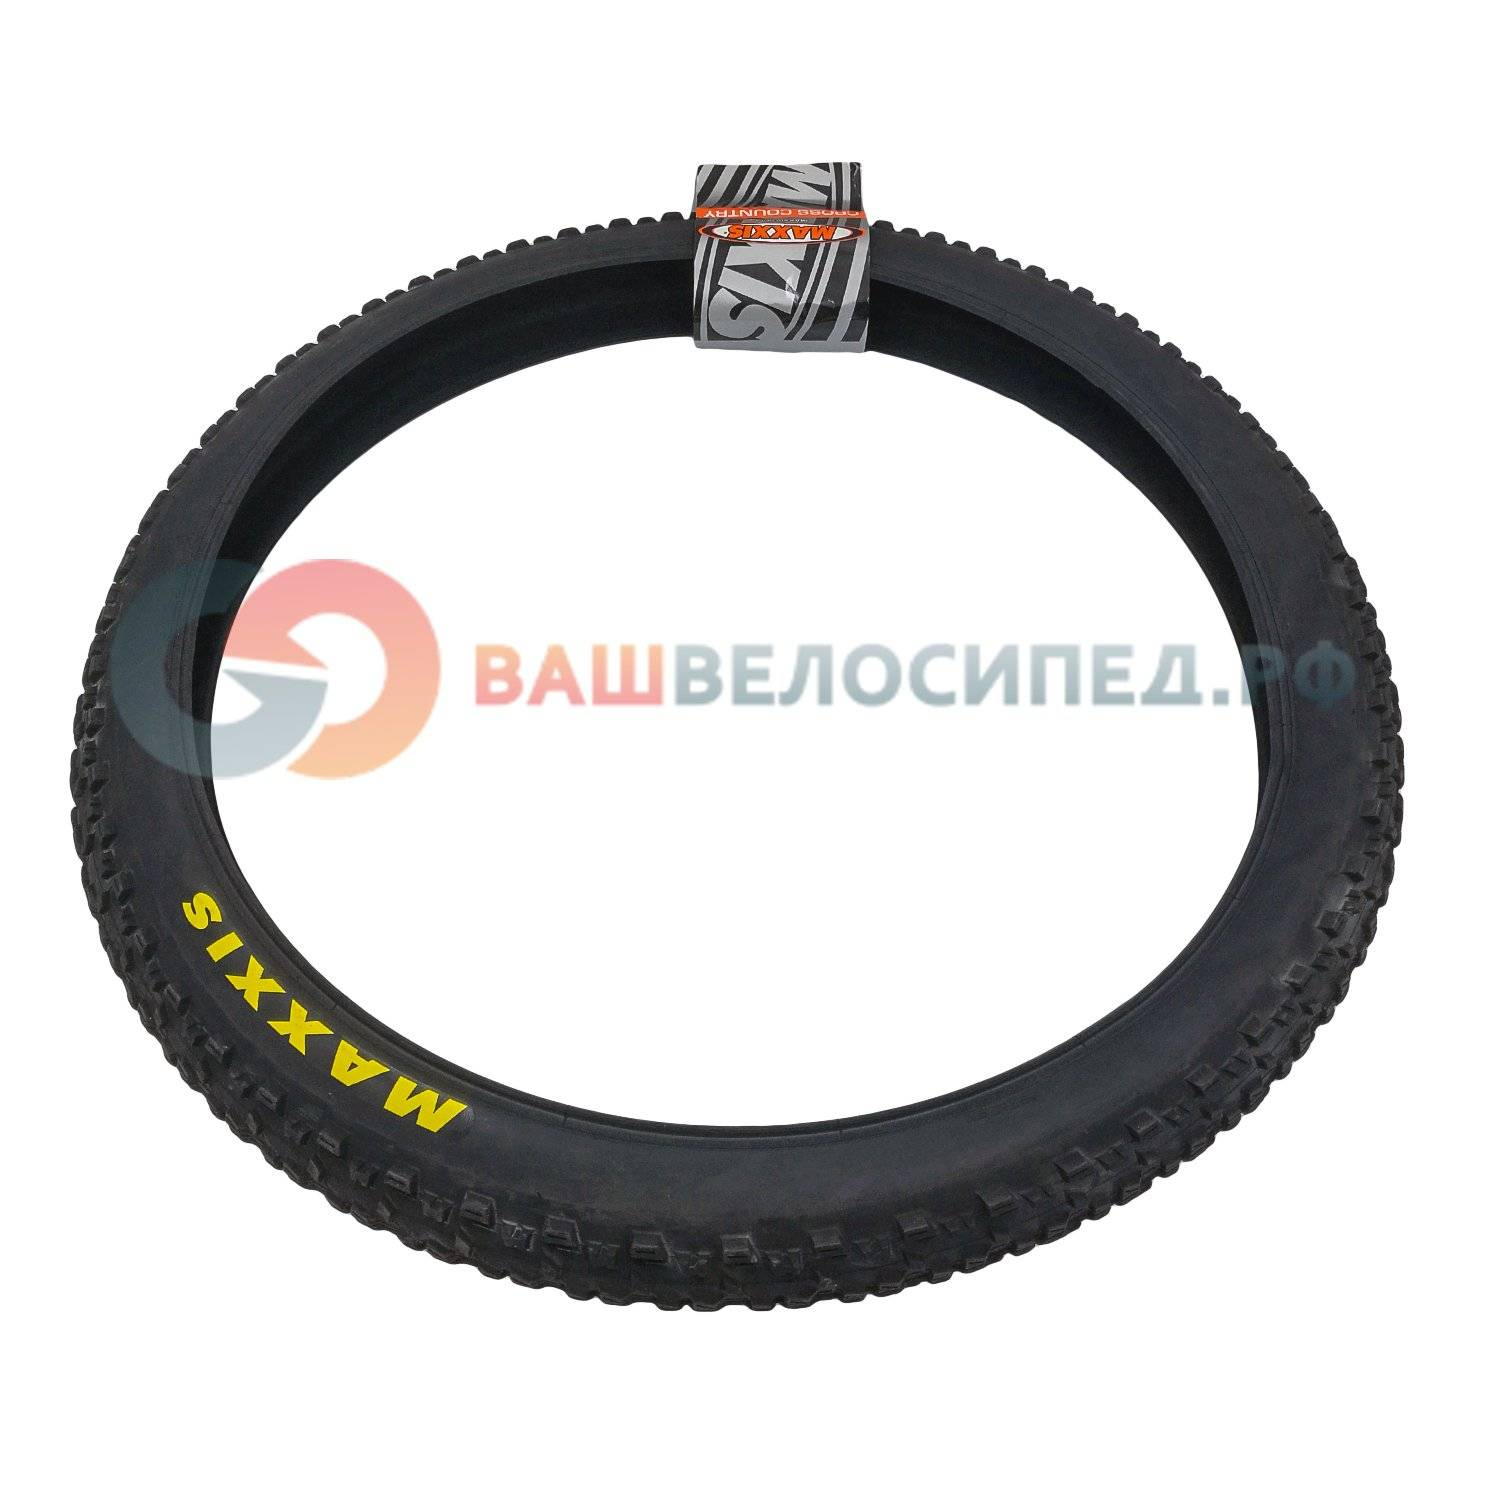 Покрышка Maxxis Ardent EXO, 27.5x2.4, 60 TPI, МТБ, TB85965000, фото 4